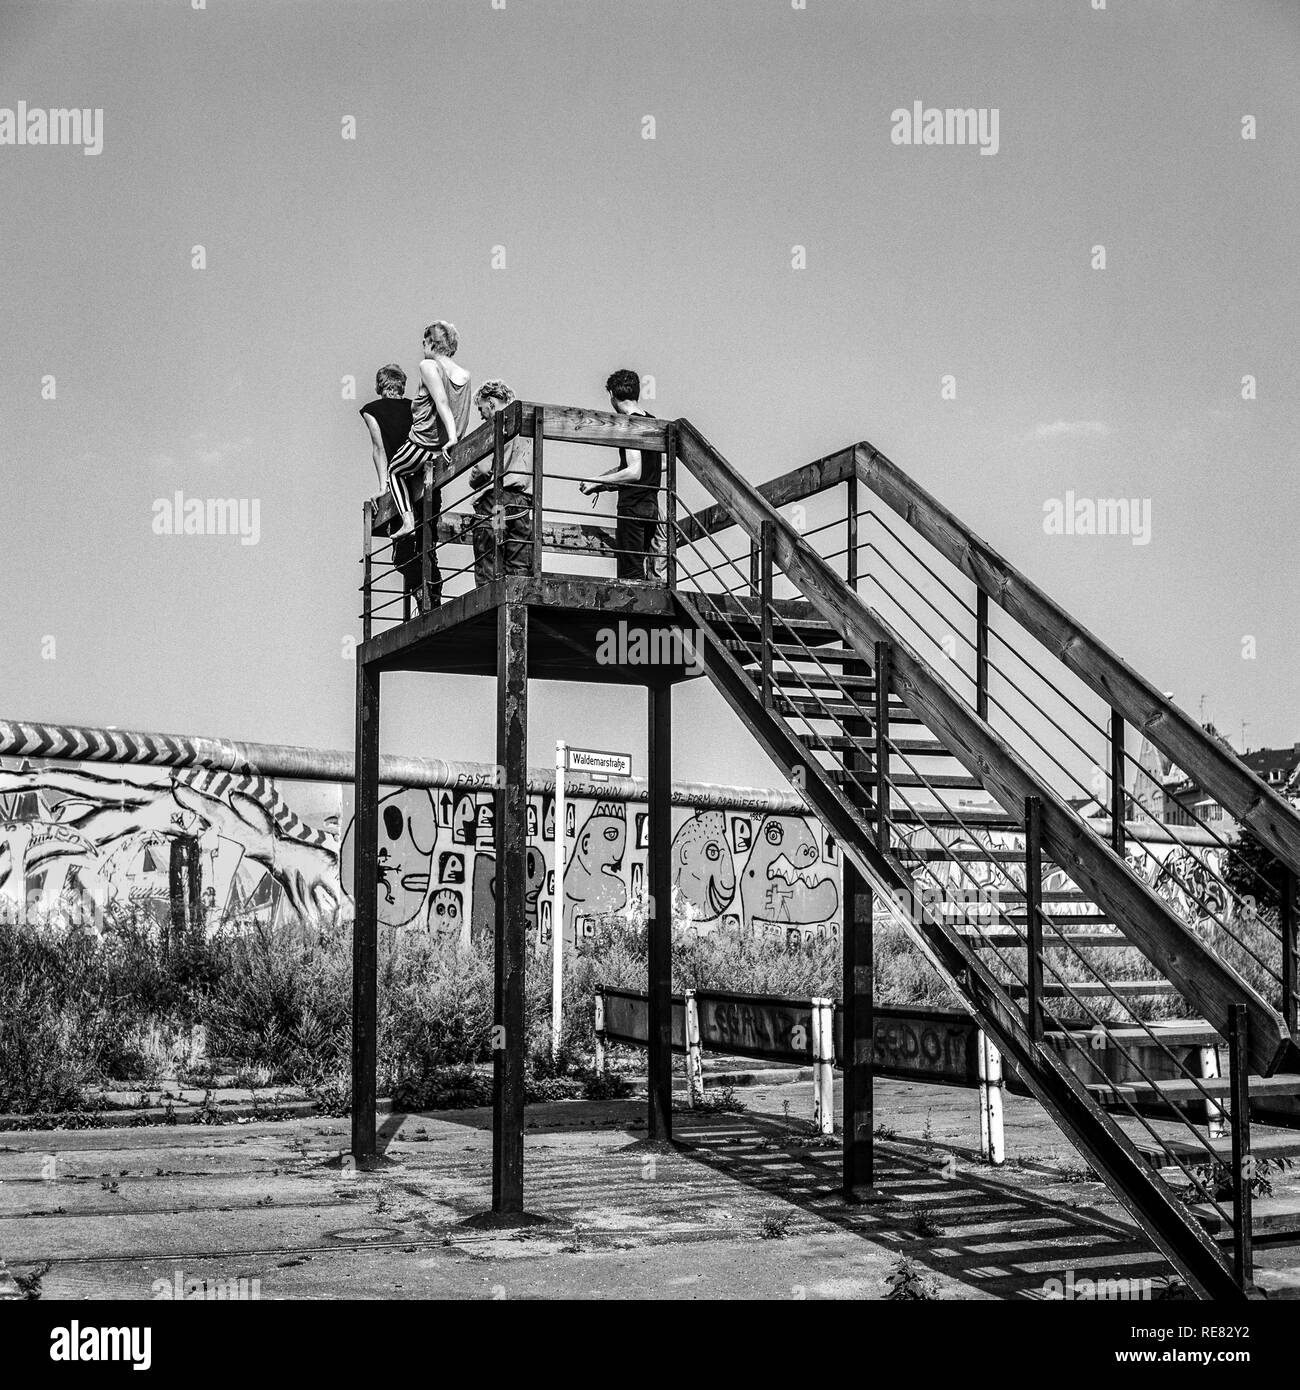 August 1986, Berlin Wall graffitis, four young people on observation platform looking over the Wall, Kreuzberg, West Berlin side, Germany, Europe, - Stock Image